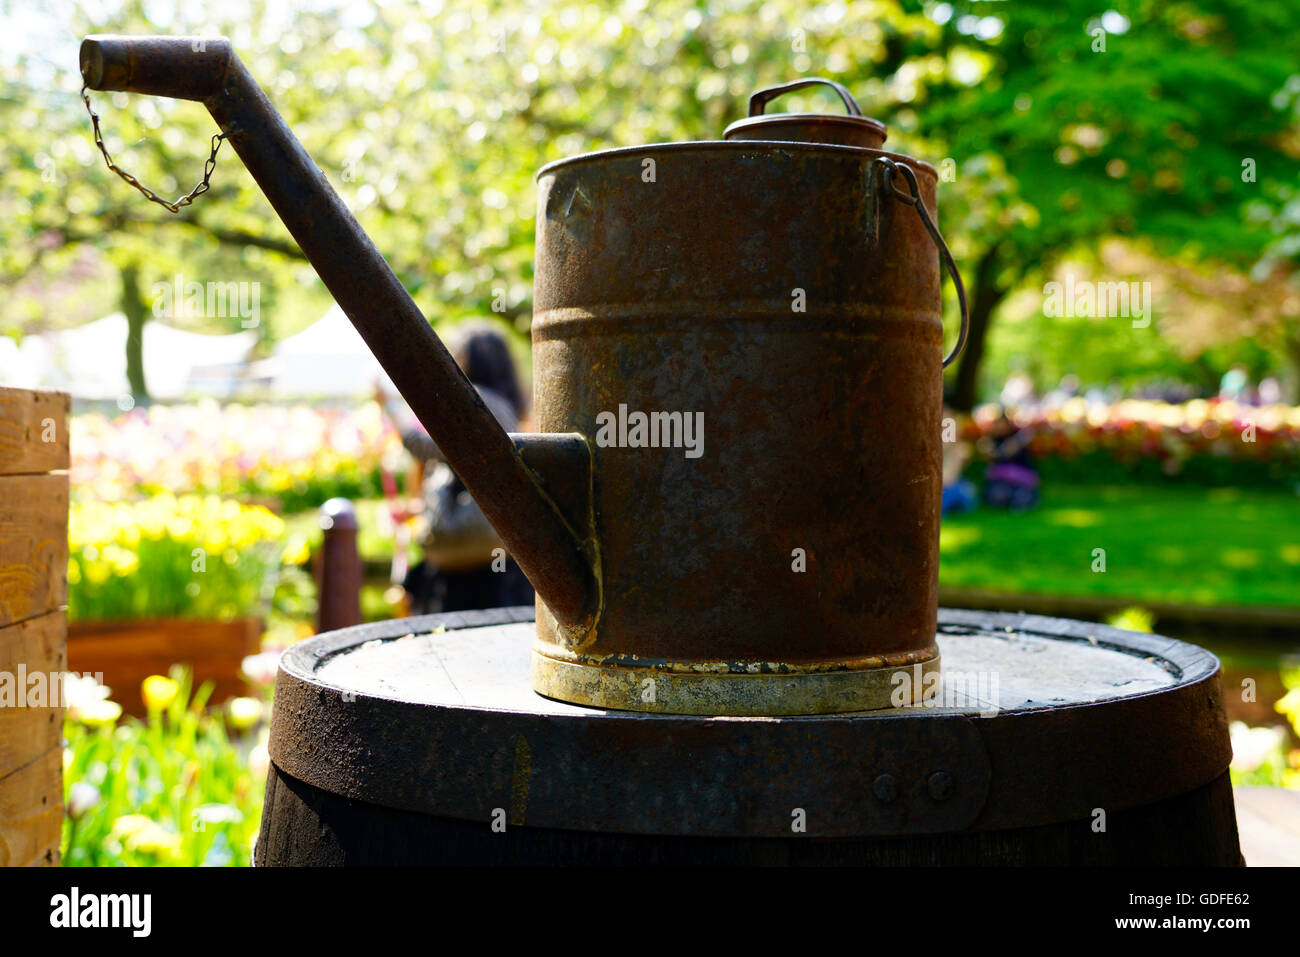 closeup of a rusty watering can - Stock Image